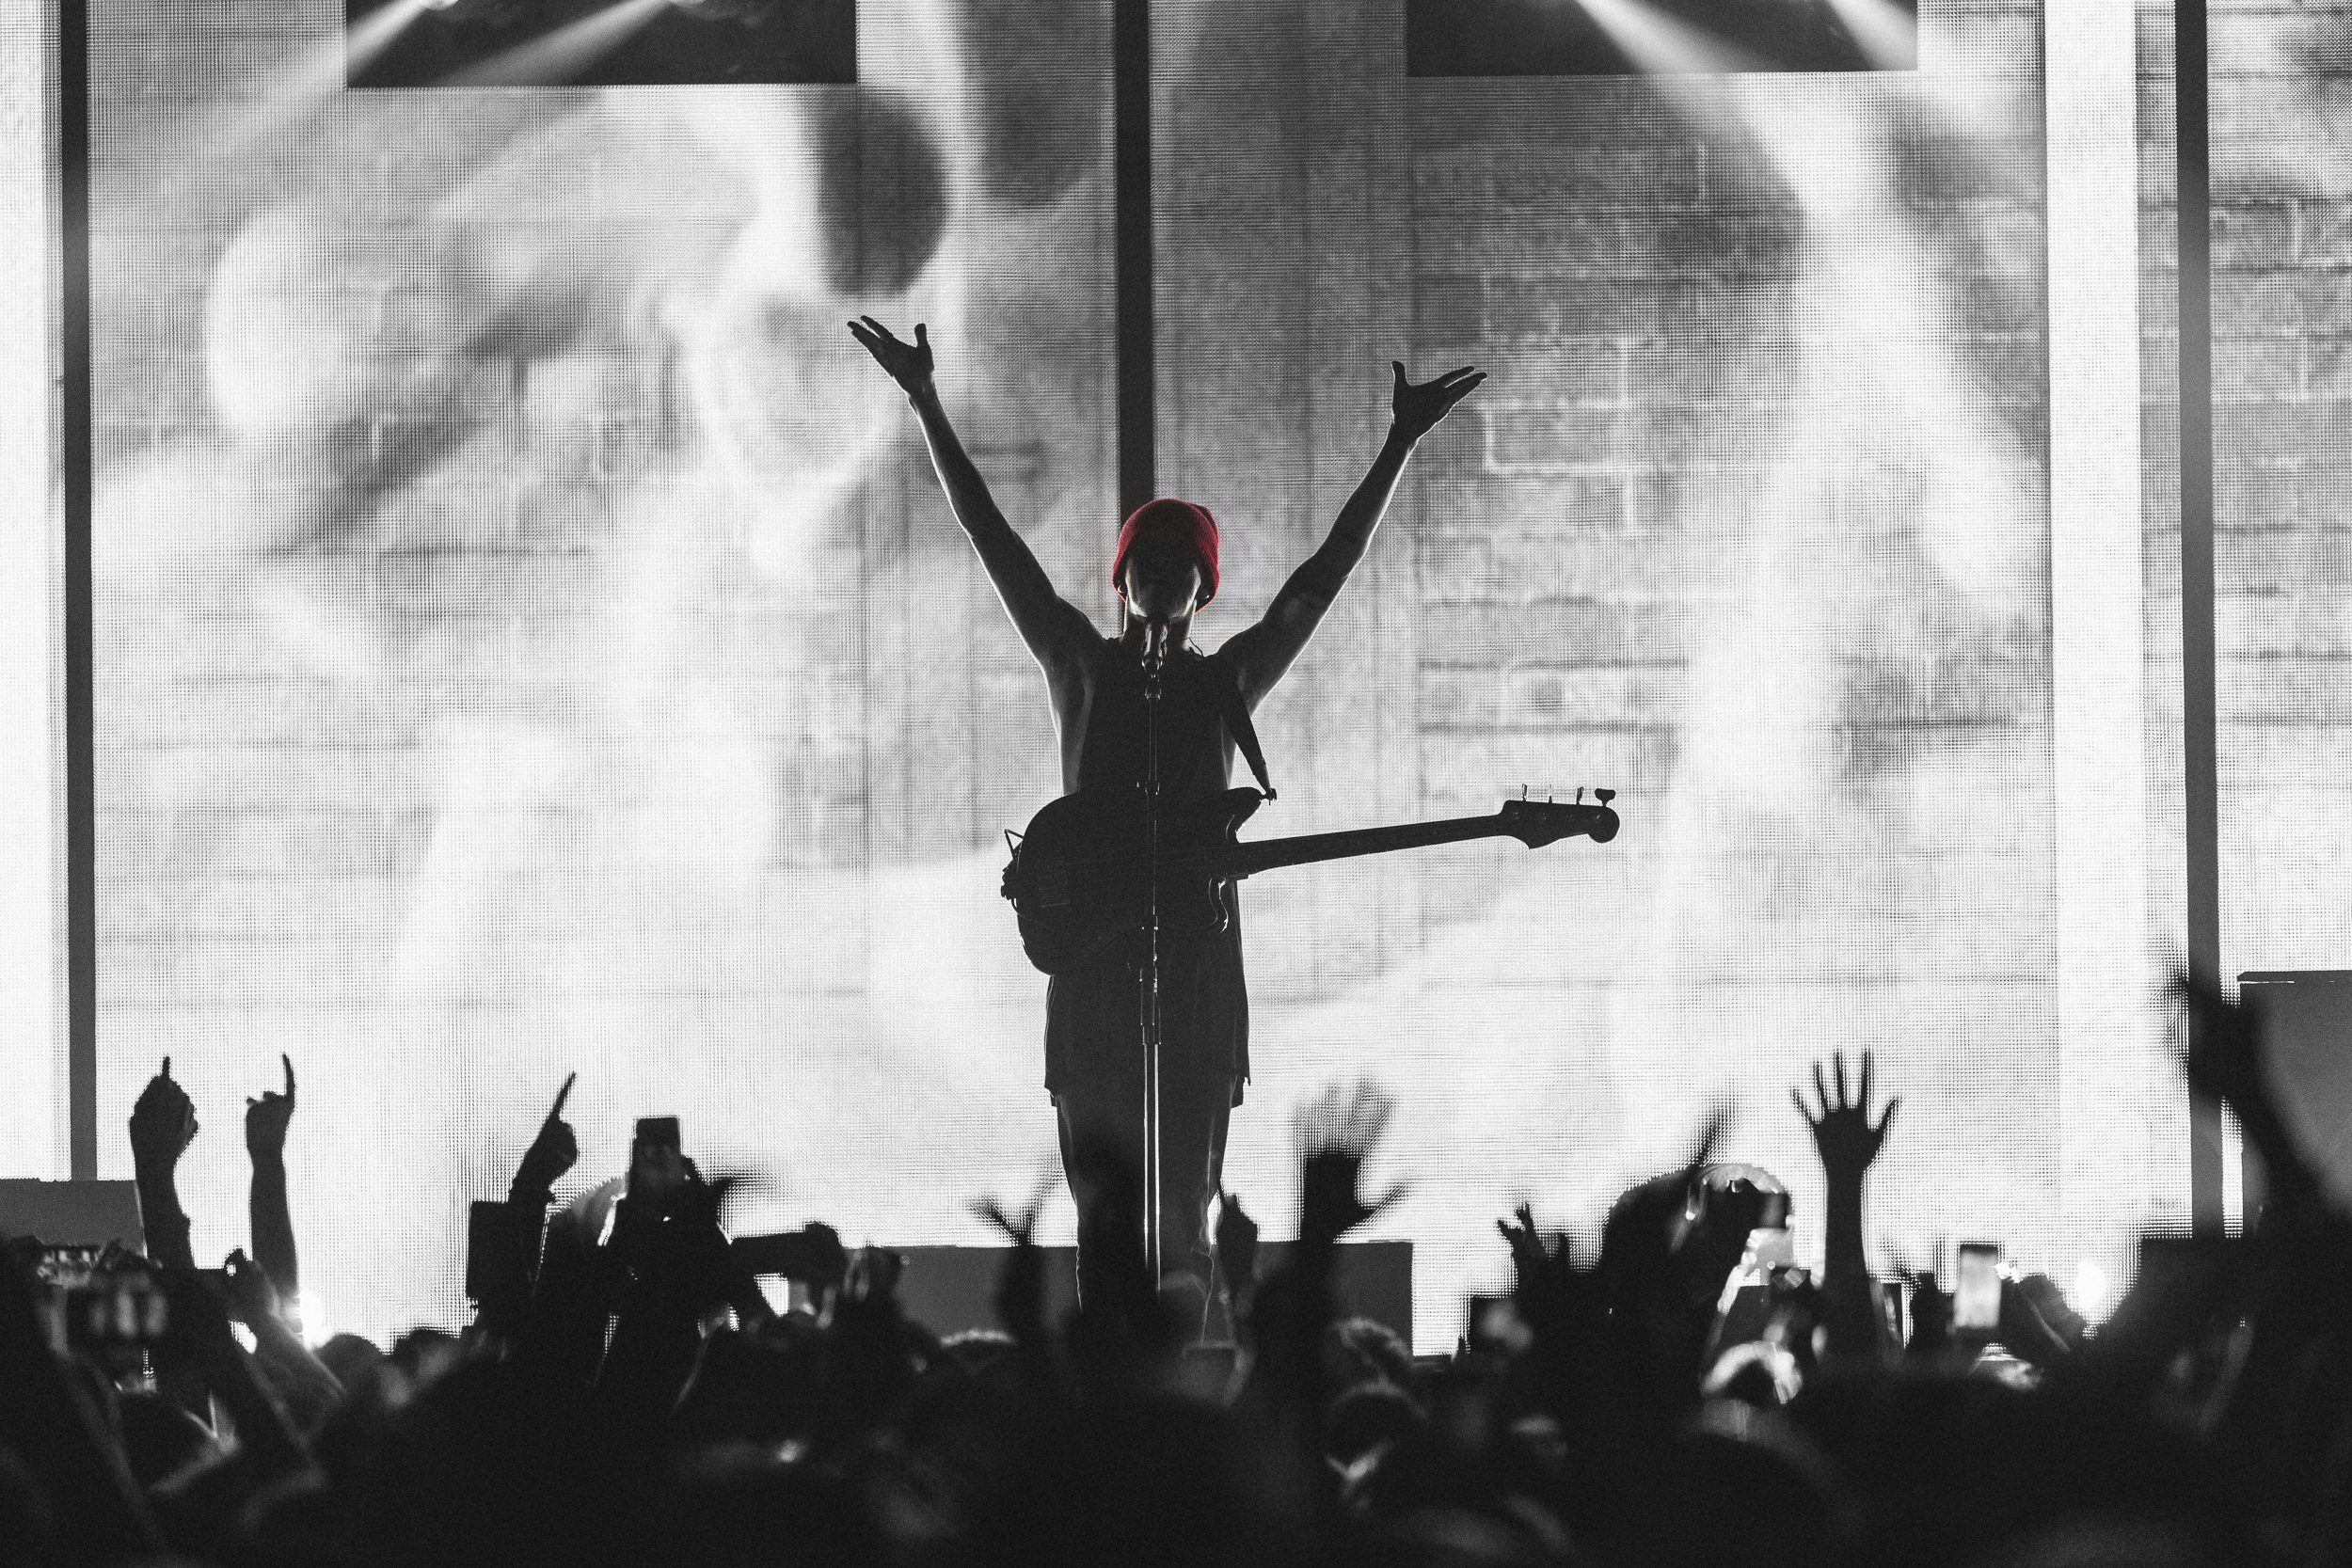 Twenty One Pilots' Emotional Roadshow in San Diego, California